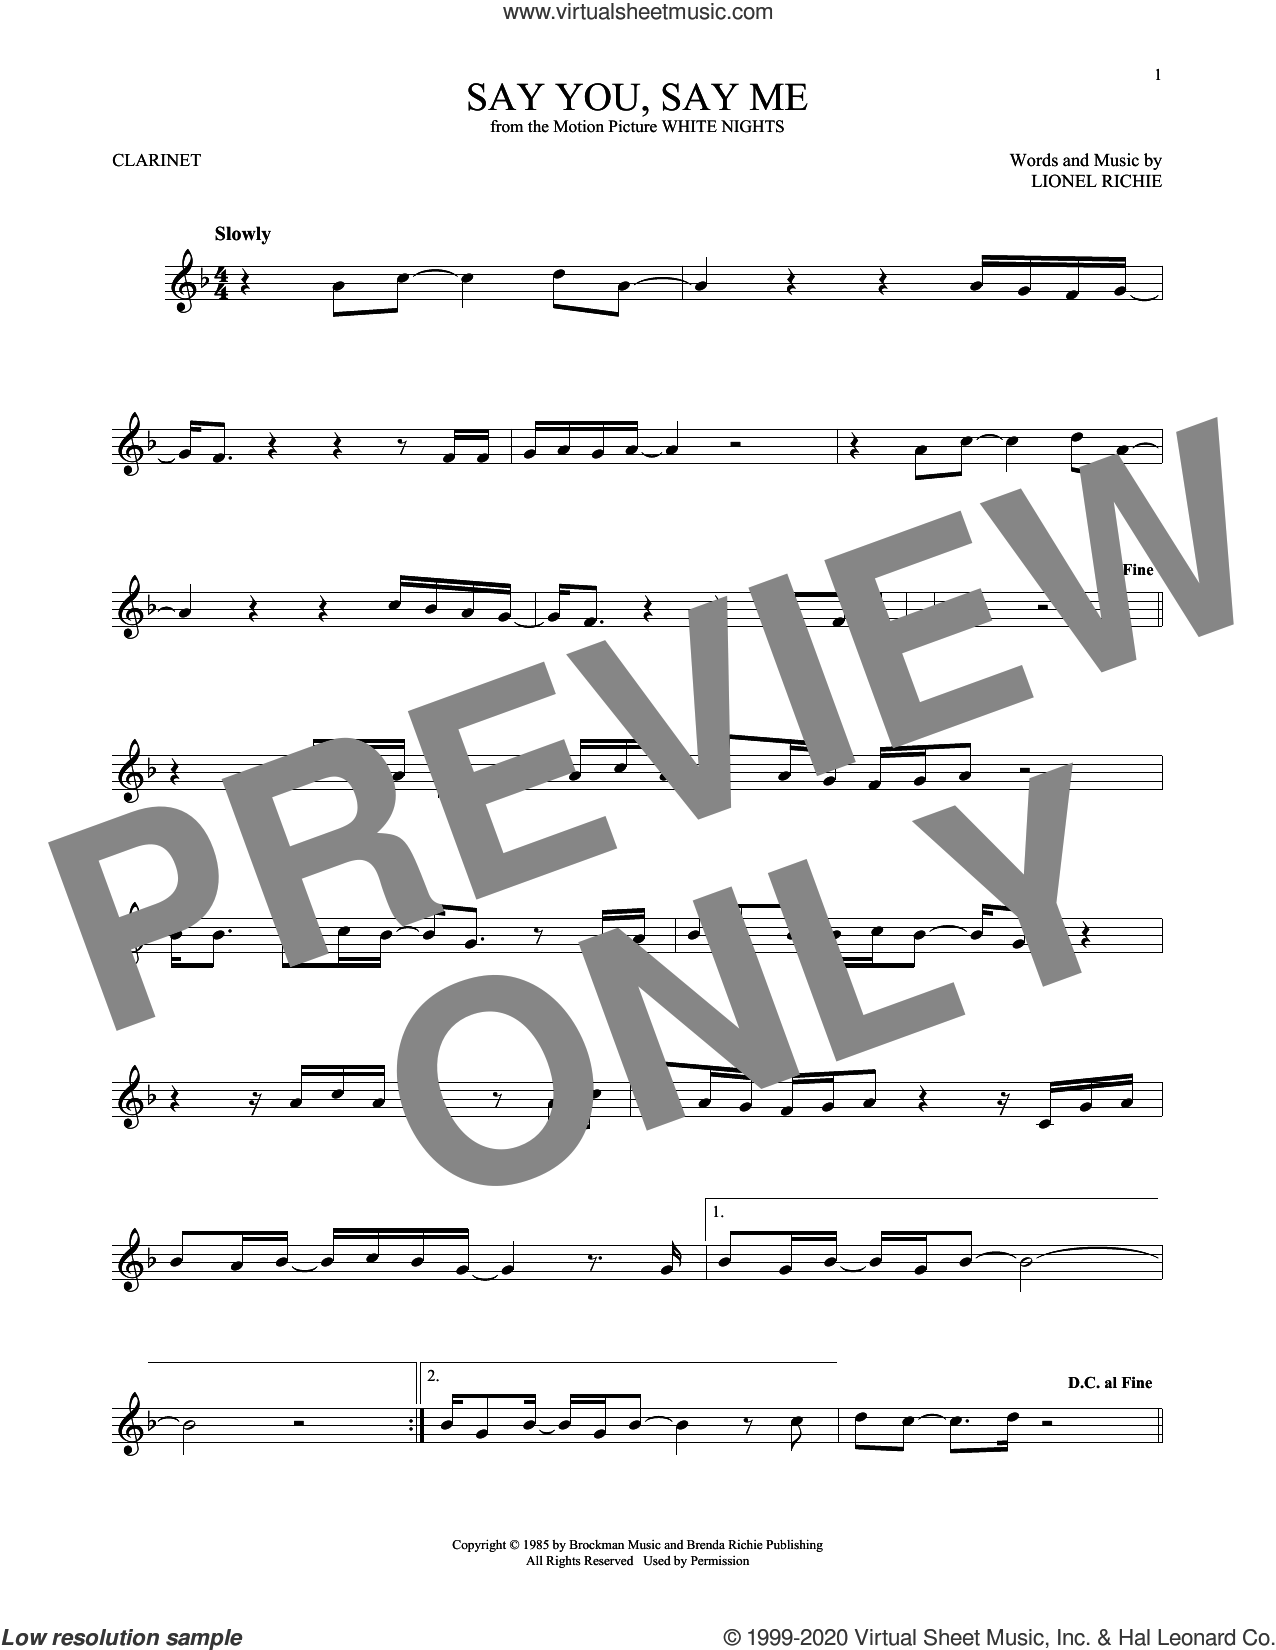 Say You, Say Me sheet music for clarinet solo by Lionel Richie, intermediate skill level